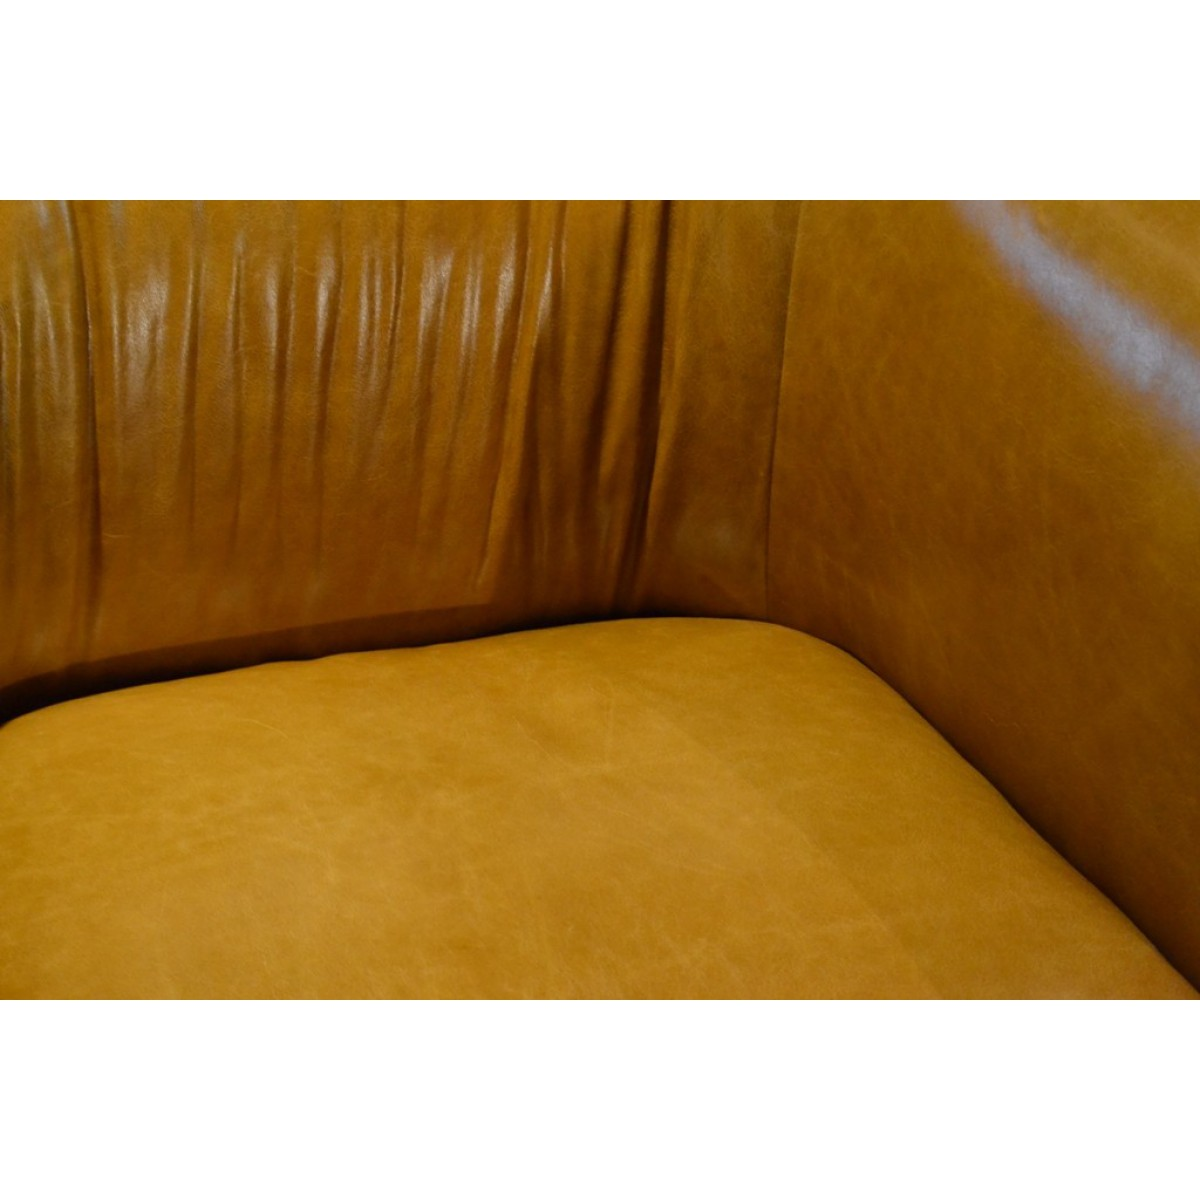 fauteuil_trias_tribeca_leder_cognac_dasilva_tabacco_easy_sofa_tom_club_collection_detail